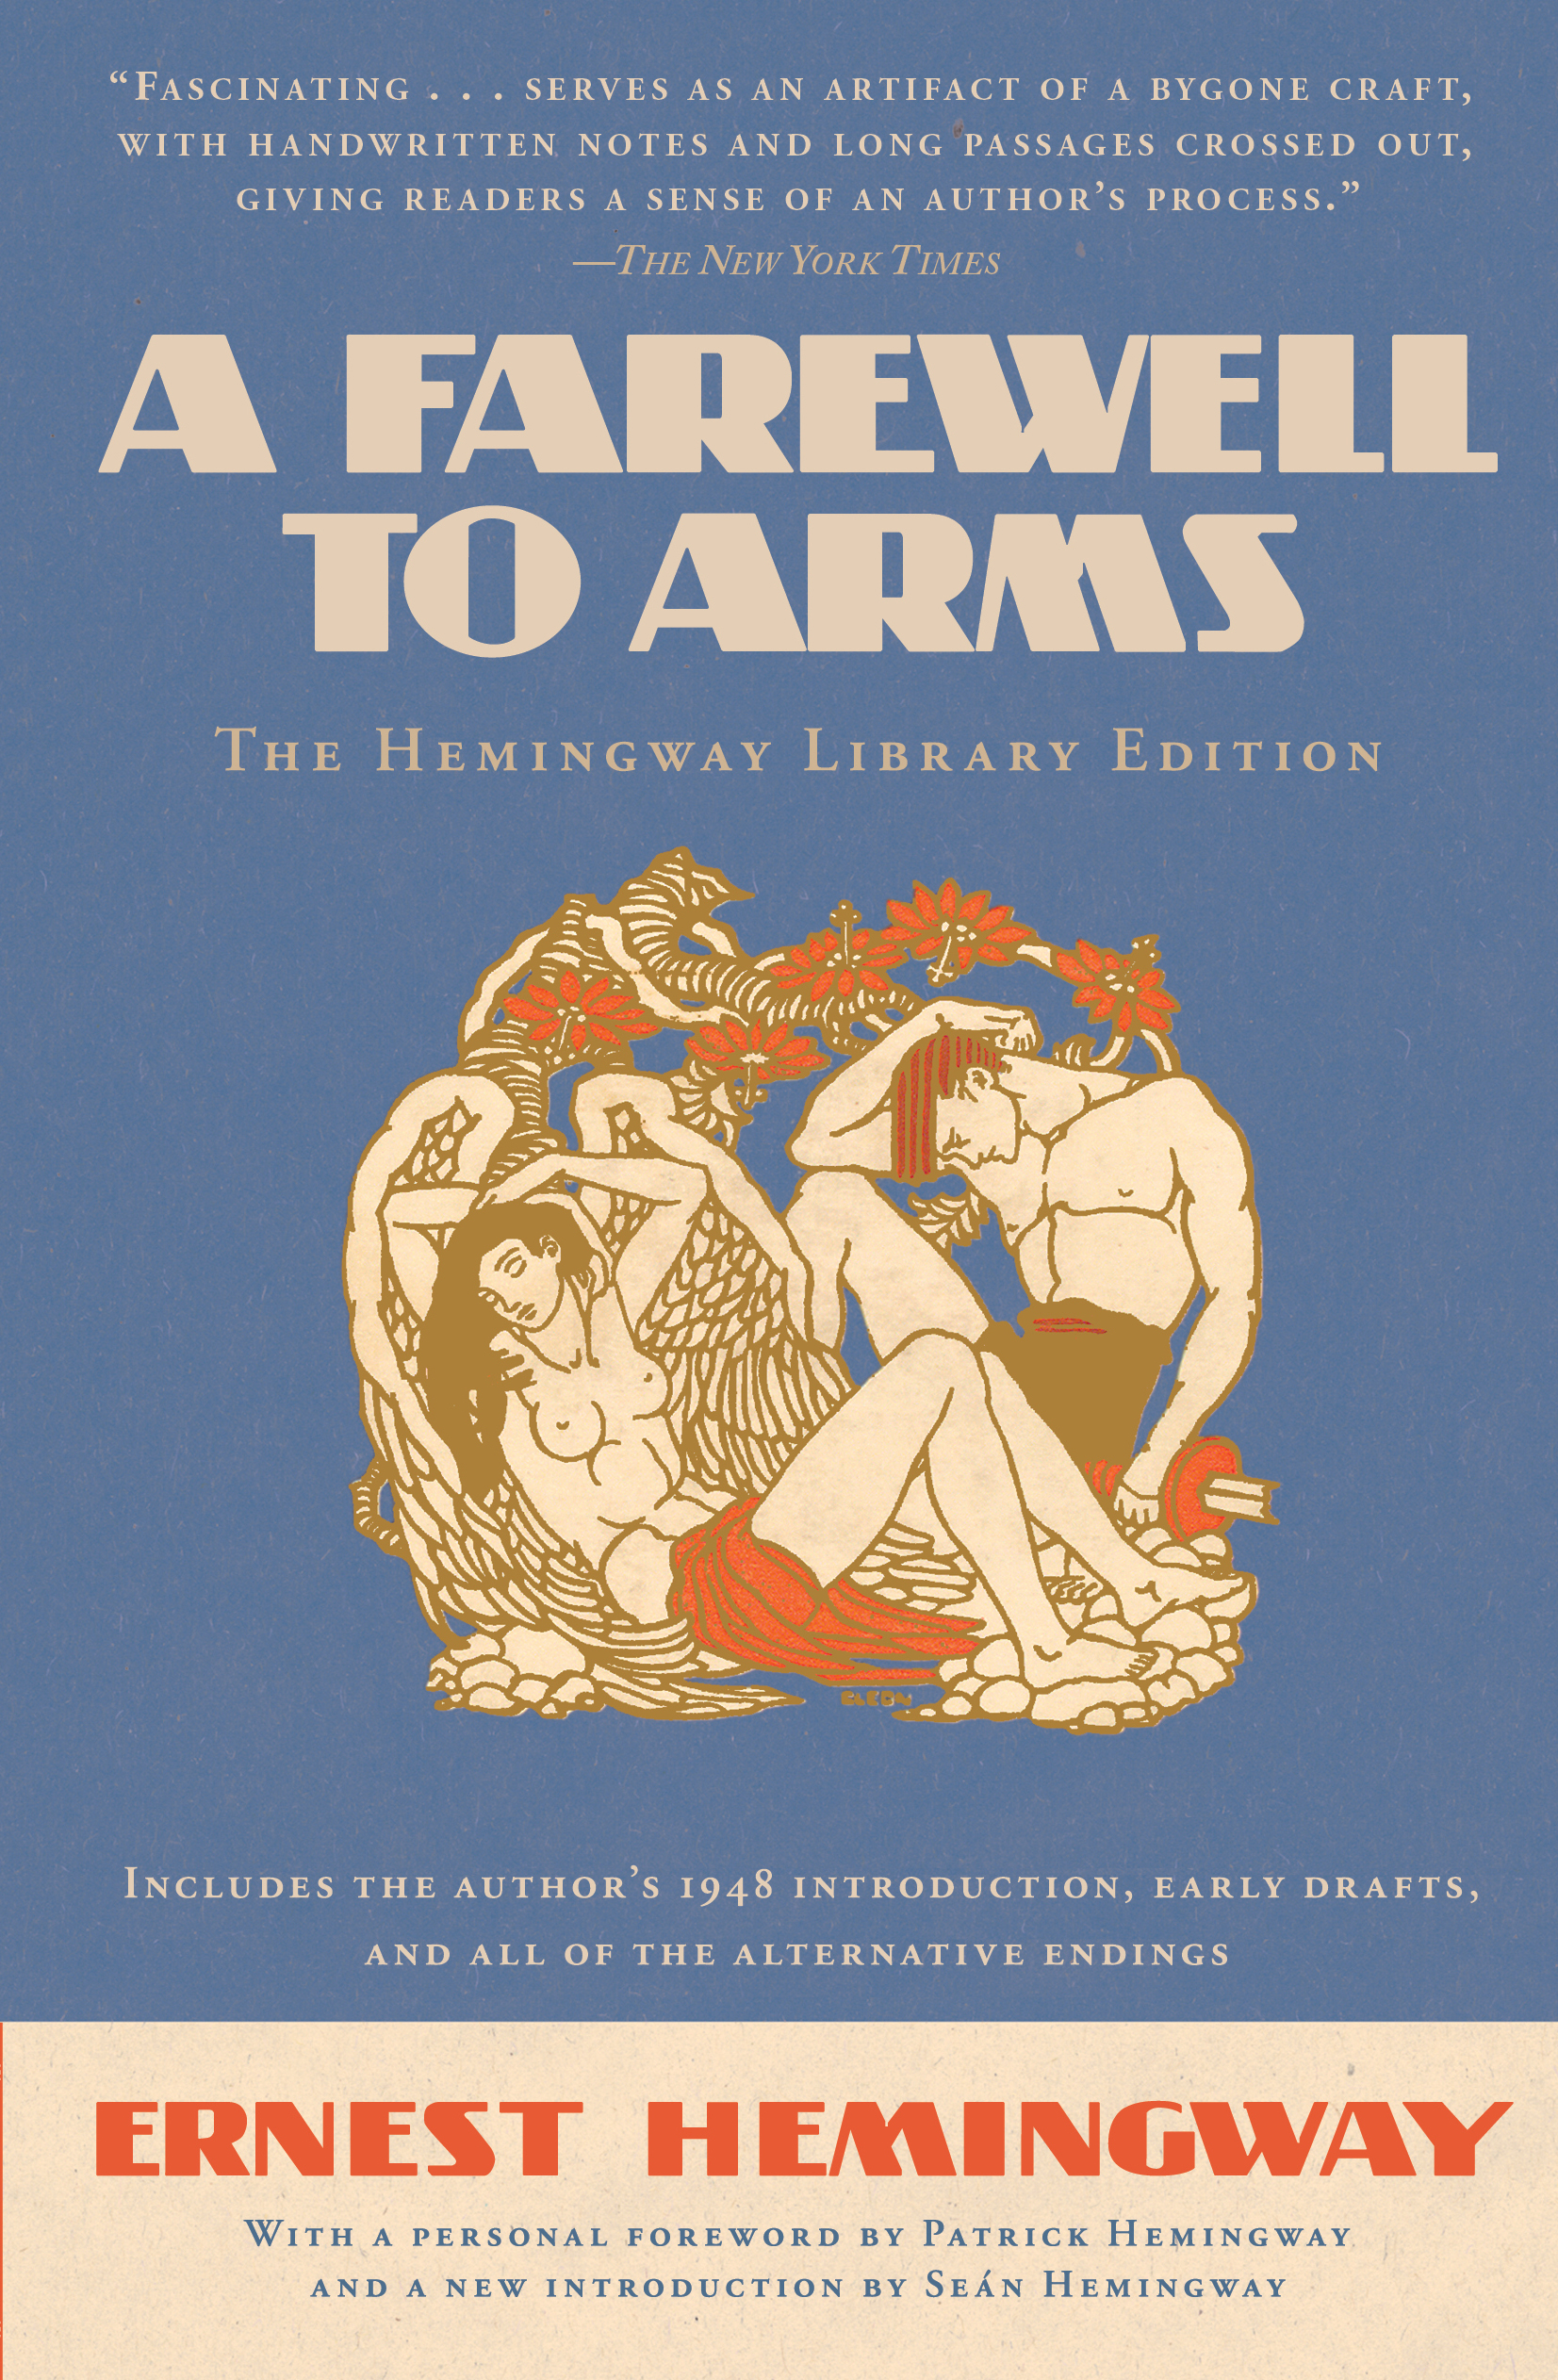 a farewell to arms book by ernest hemingway patrick hemingway  9781476764528 hr